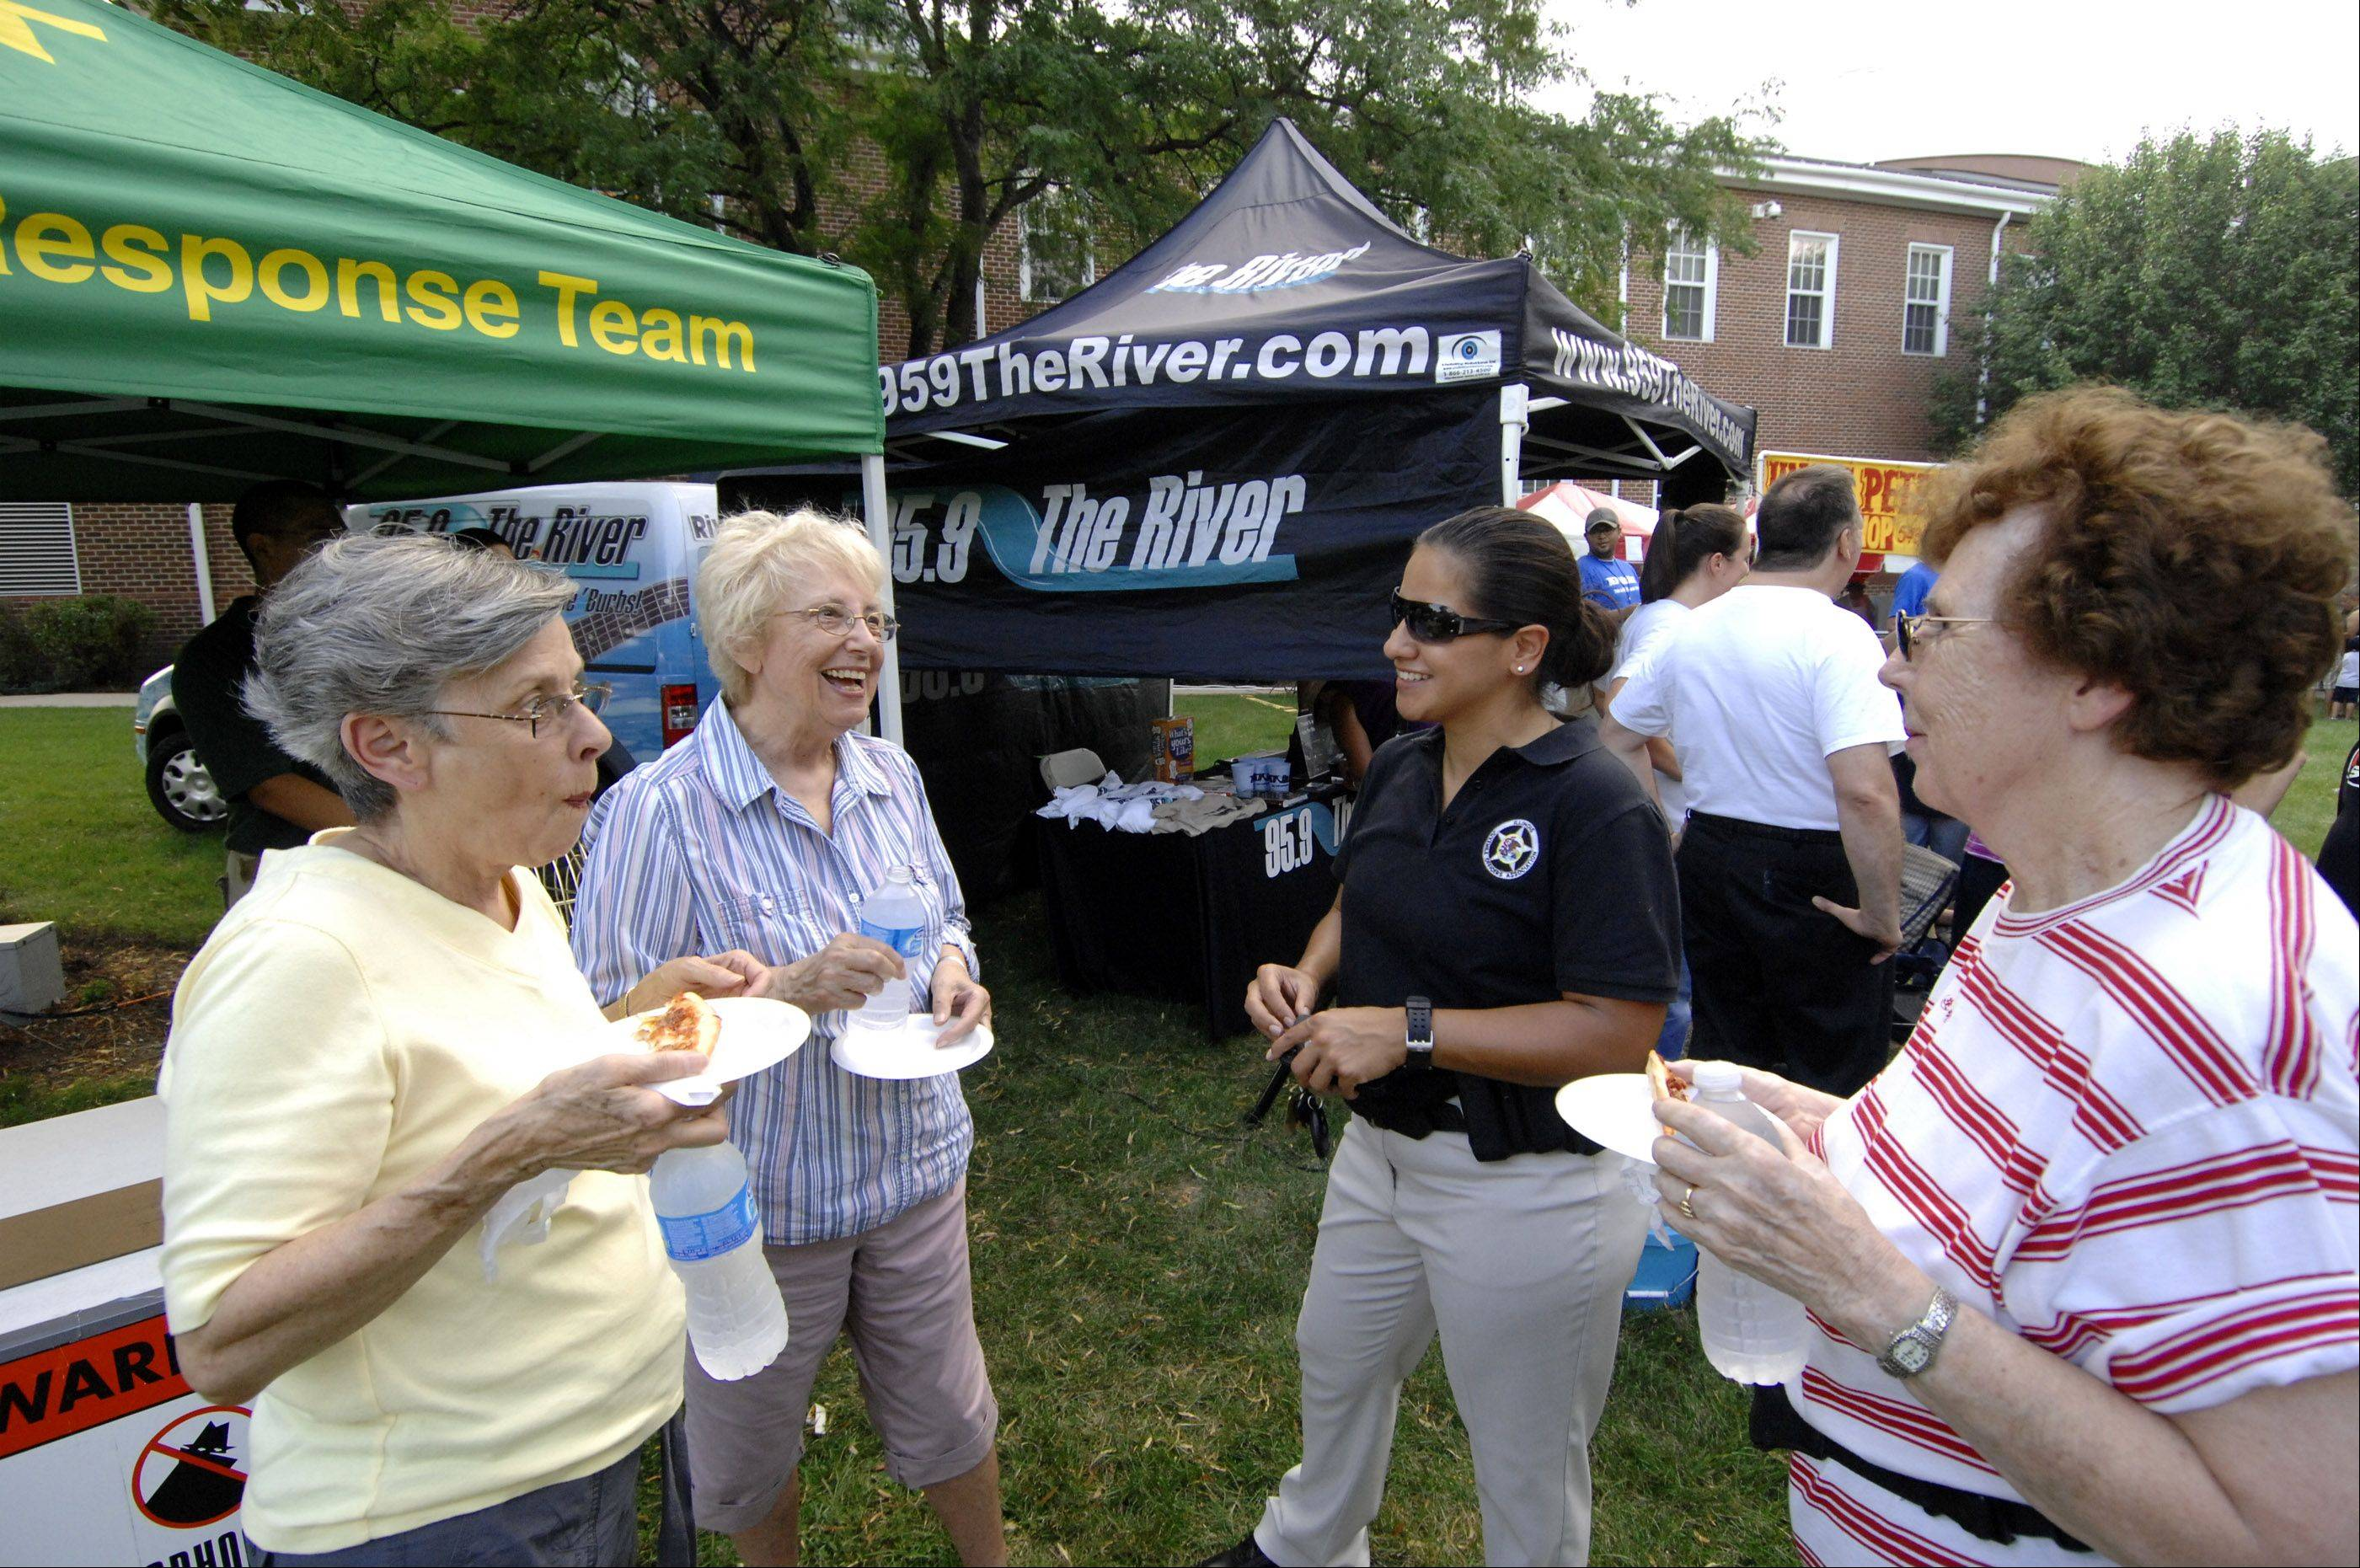 Addison residents turned out in force to chow down on pizza at $1.00 per slice, and participate in National Night Out. The festivities featured local pizza vendors, the police and fire departments and a band on the village hall lawn. Enjoying the pizza and chatting are l-r: Virginia Hardenbrook, Lee Maras, Addison police officer Marie Hernandez, and Rita Seeling.